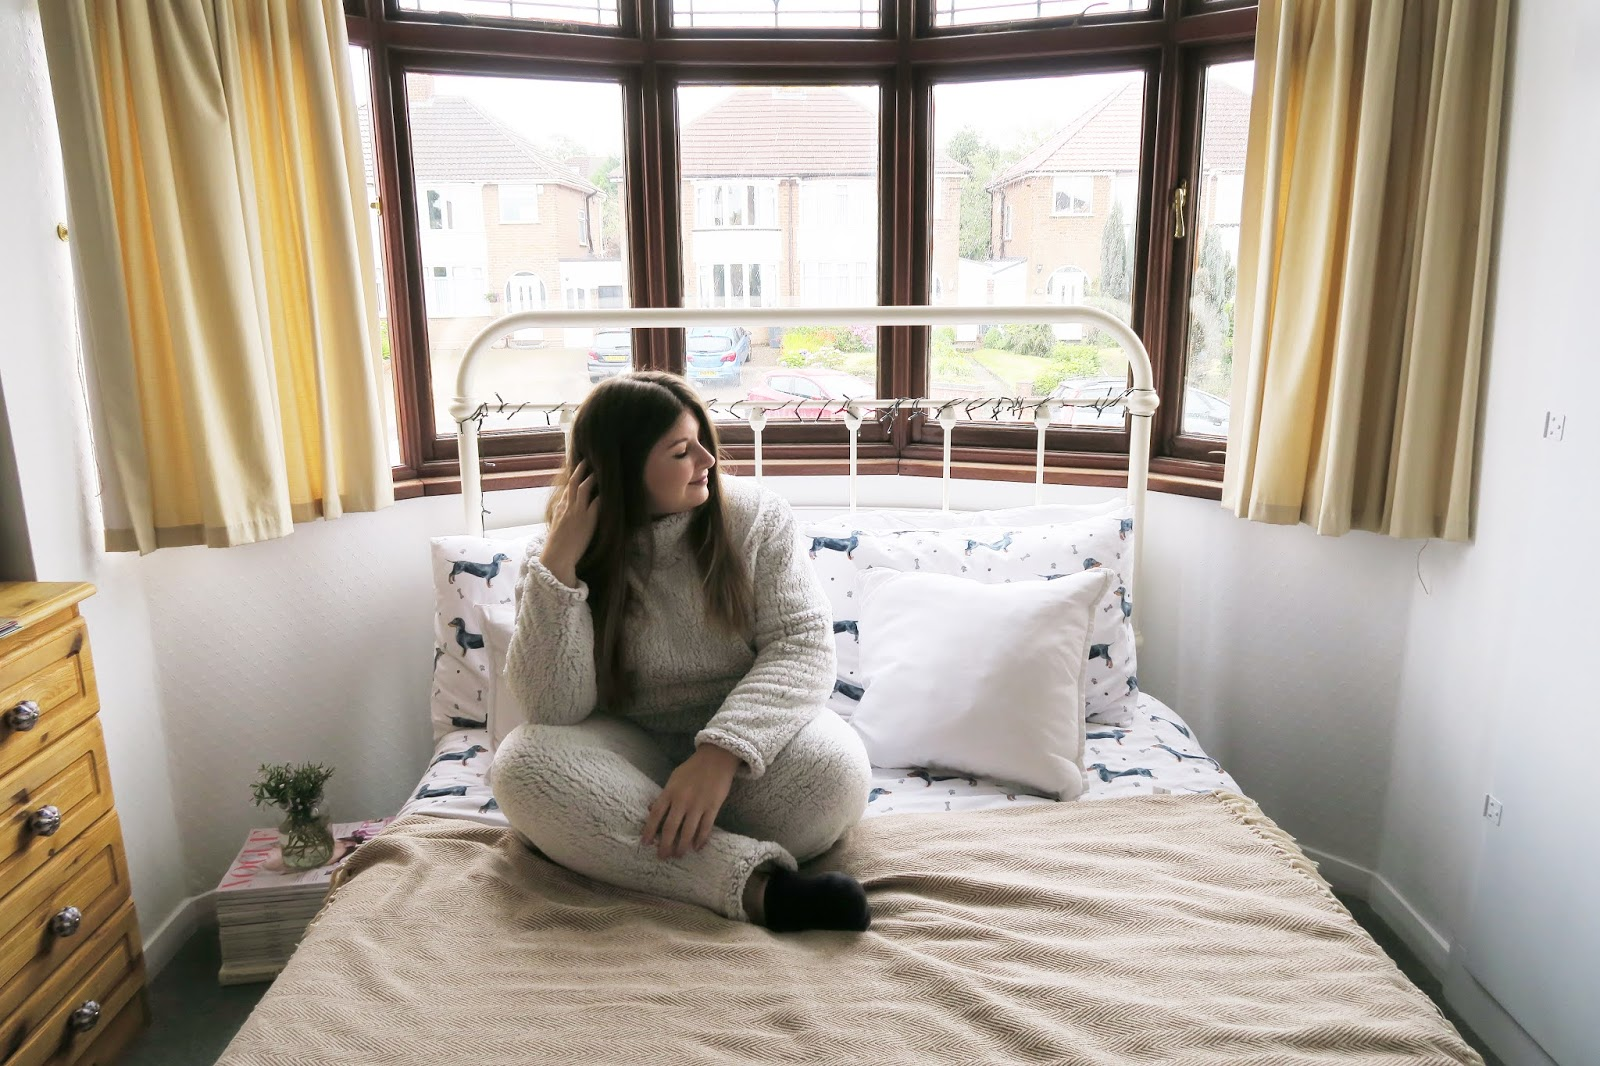 Grace can be seen sitting on her bed cross legged. She is wearing a thick fluffy set of grey pyjamas